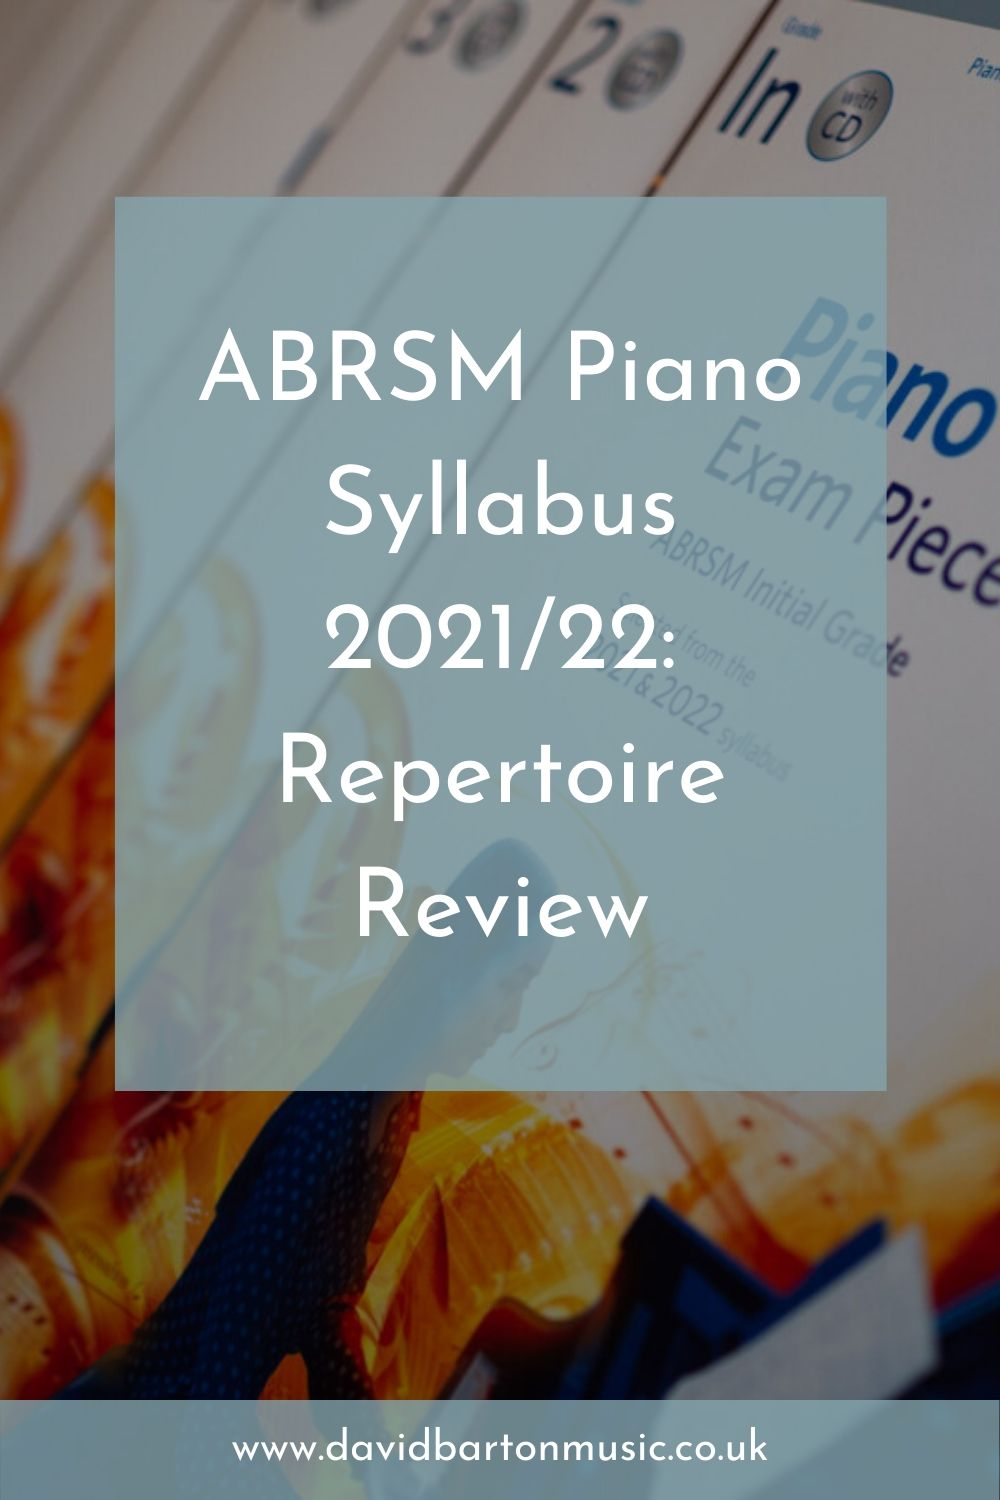 ABRSM Piano Syllabus 2021/22: Repertoire Review - Pinterest Graphic